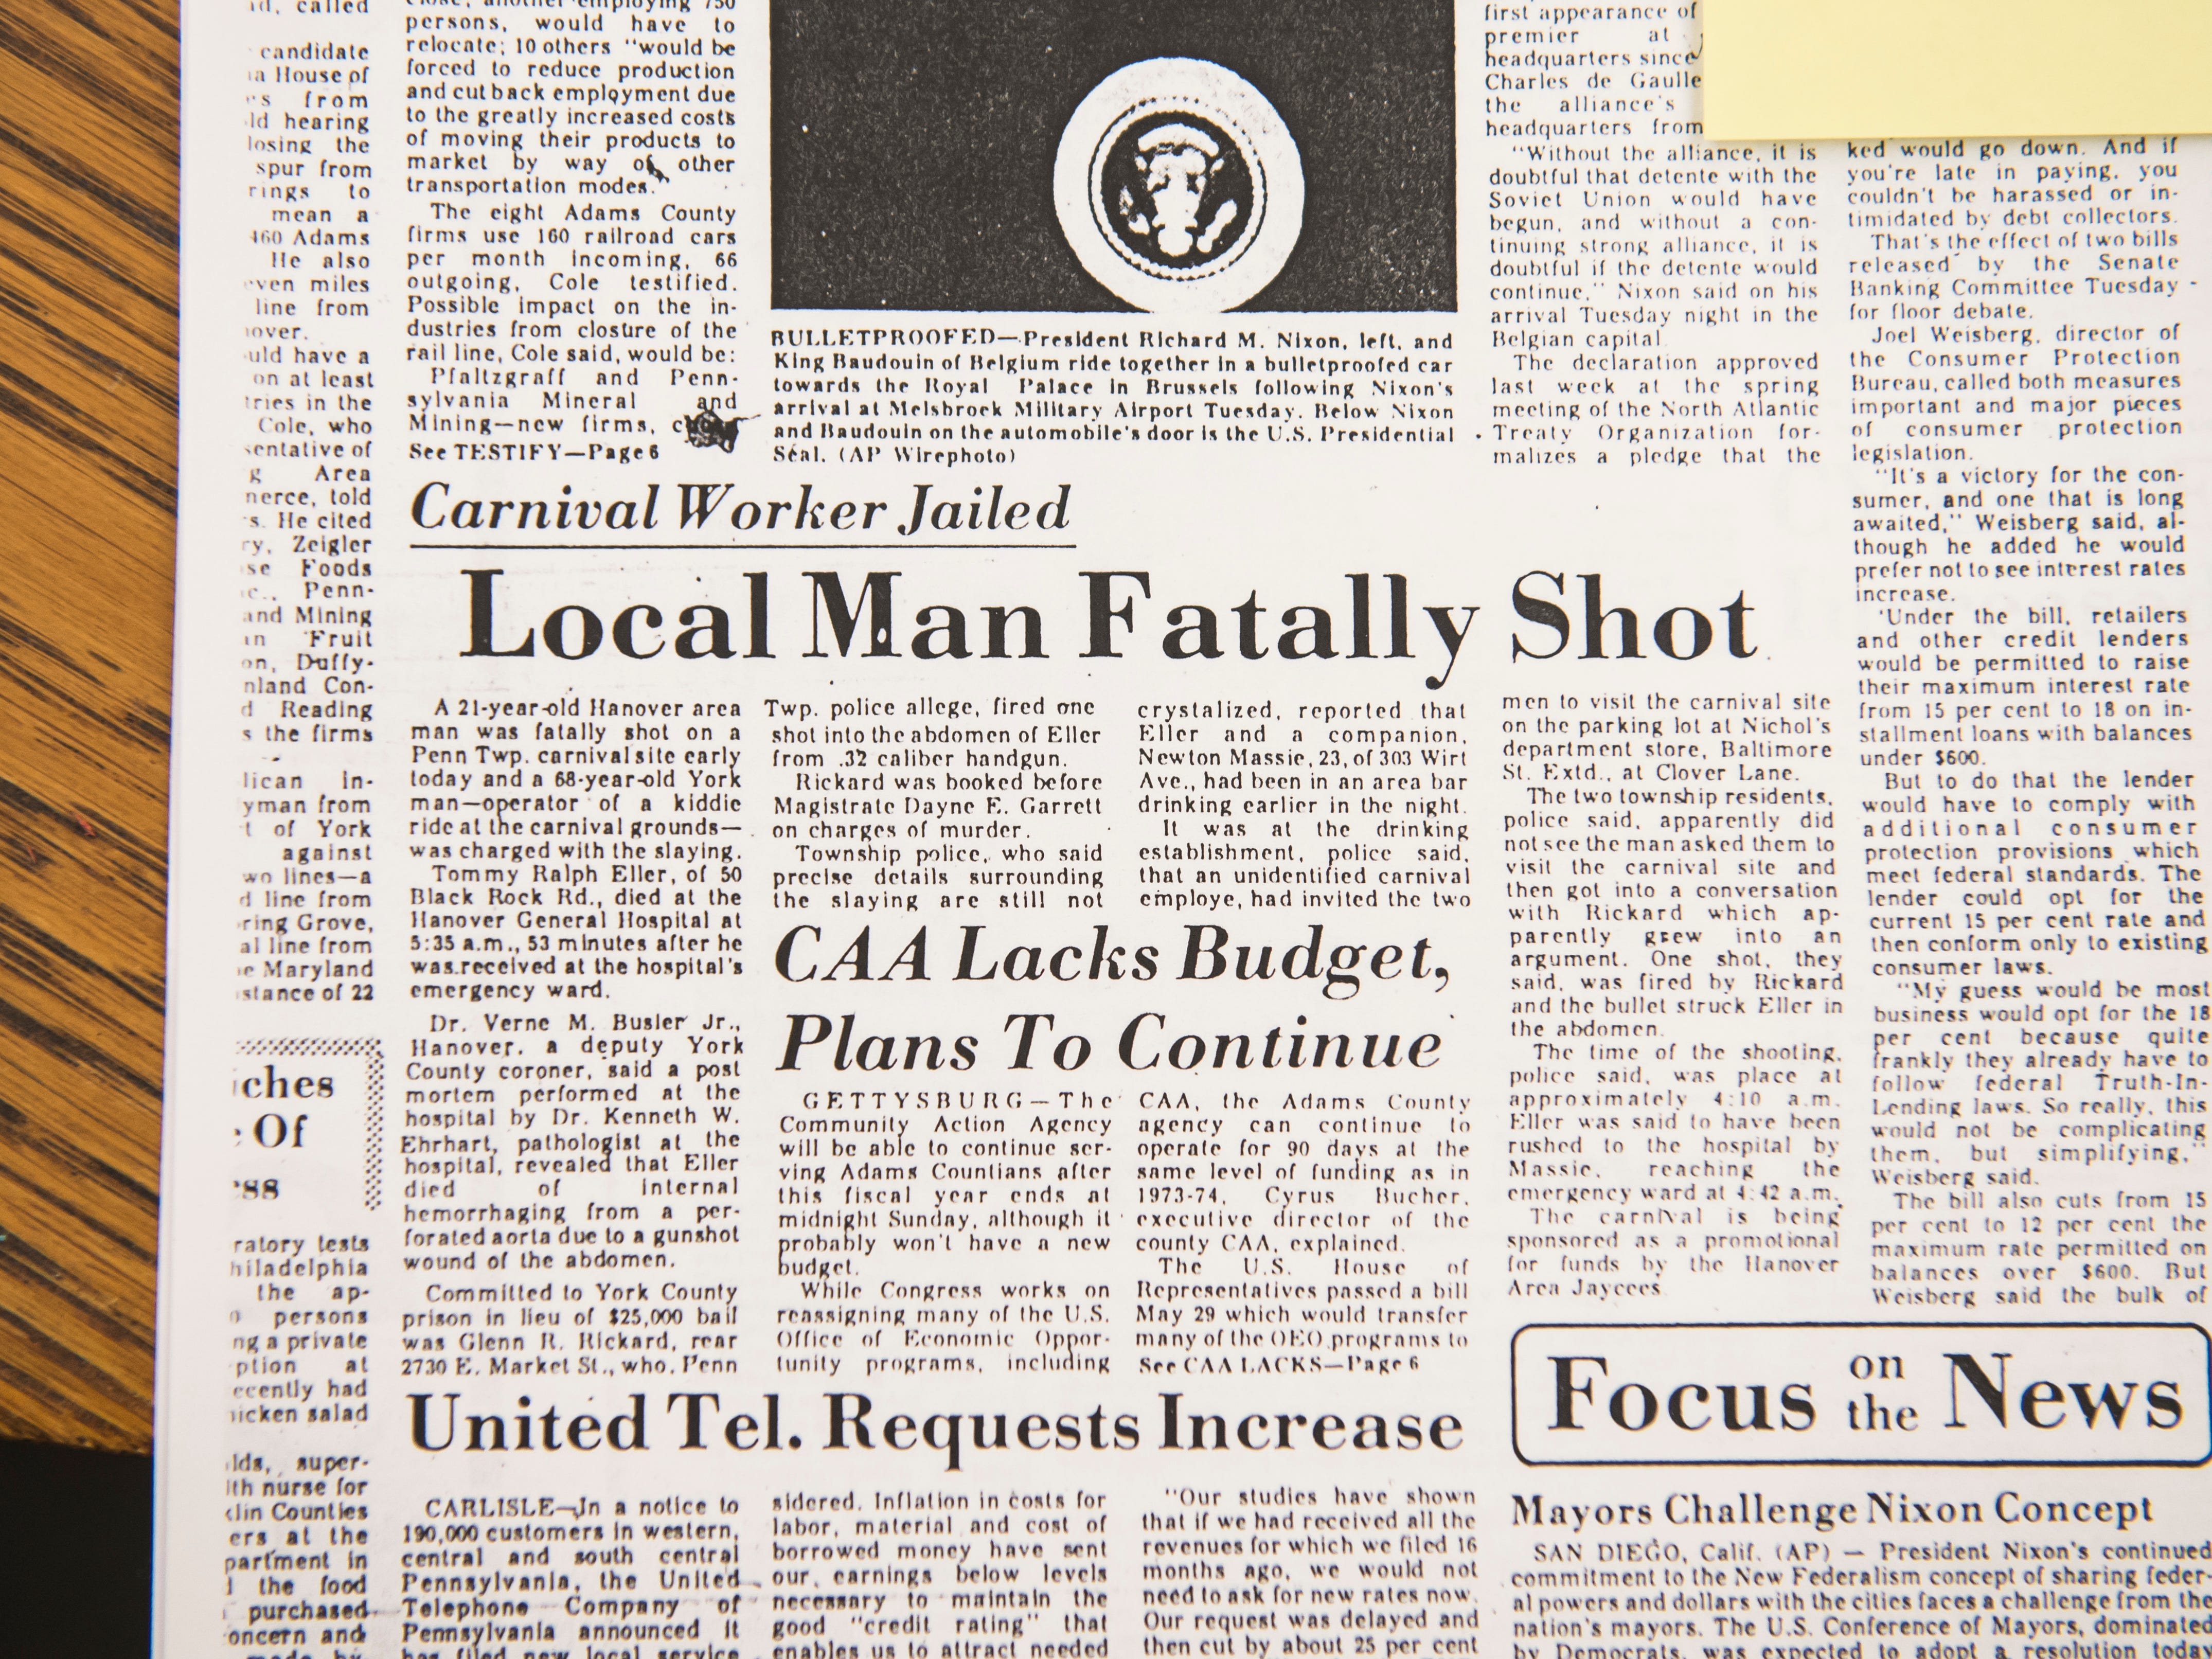 A newspaper article from 1974 details the death of Tommy Eller, 21, who was fatally shot on the site of a Penn Township carnival grounds by a 68-year-old York man.